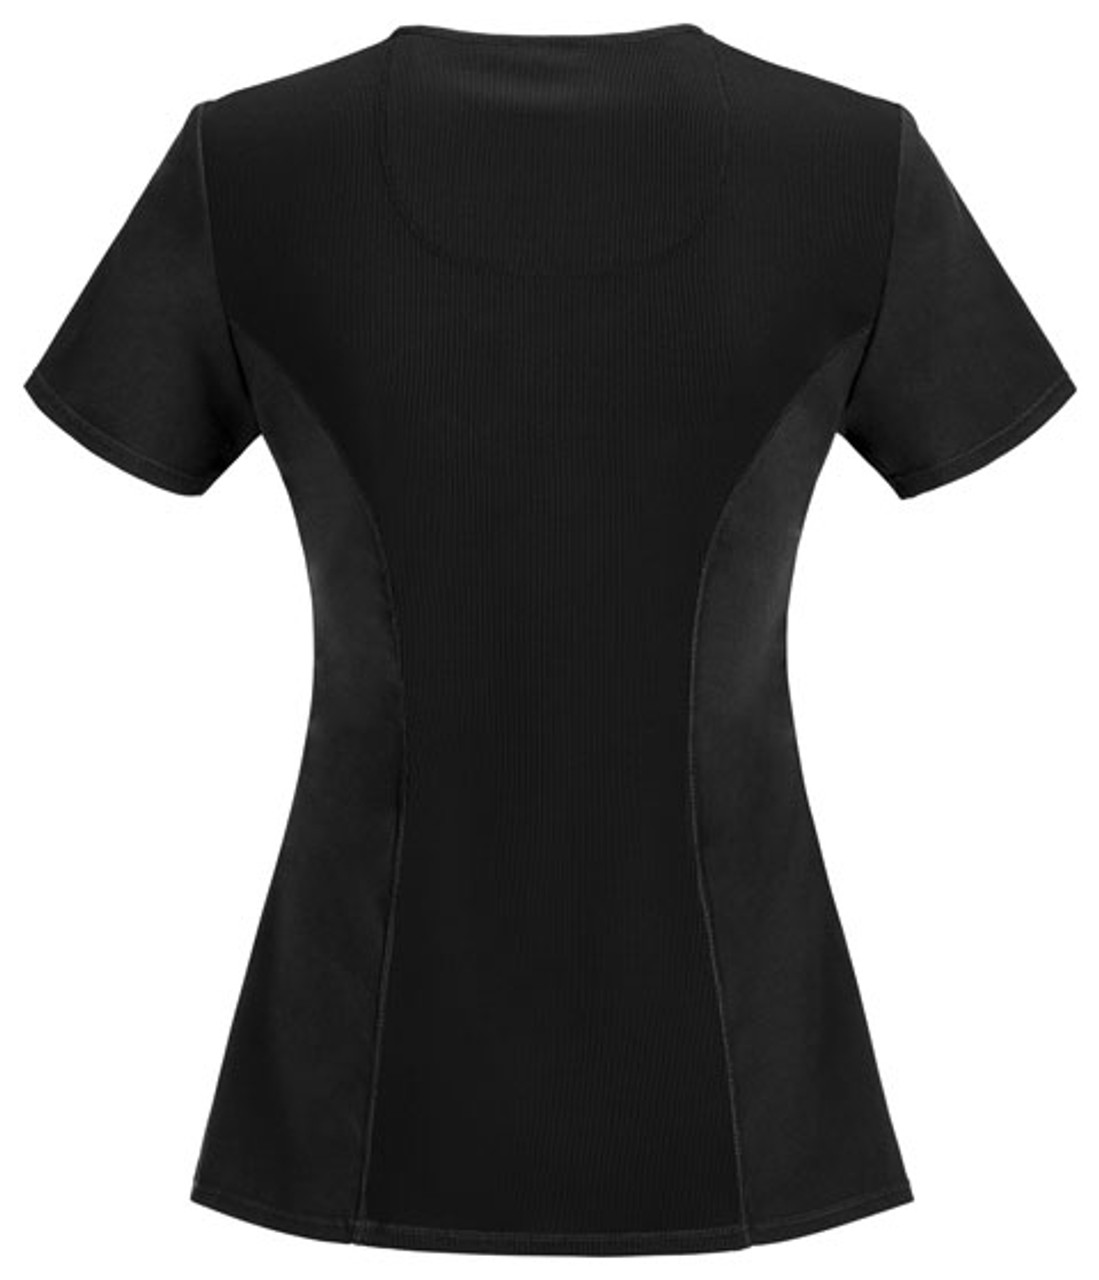 2625A Top in Black - Back View